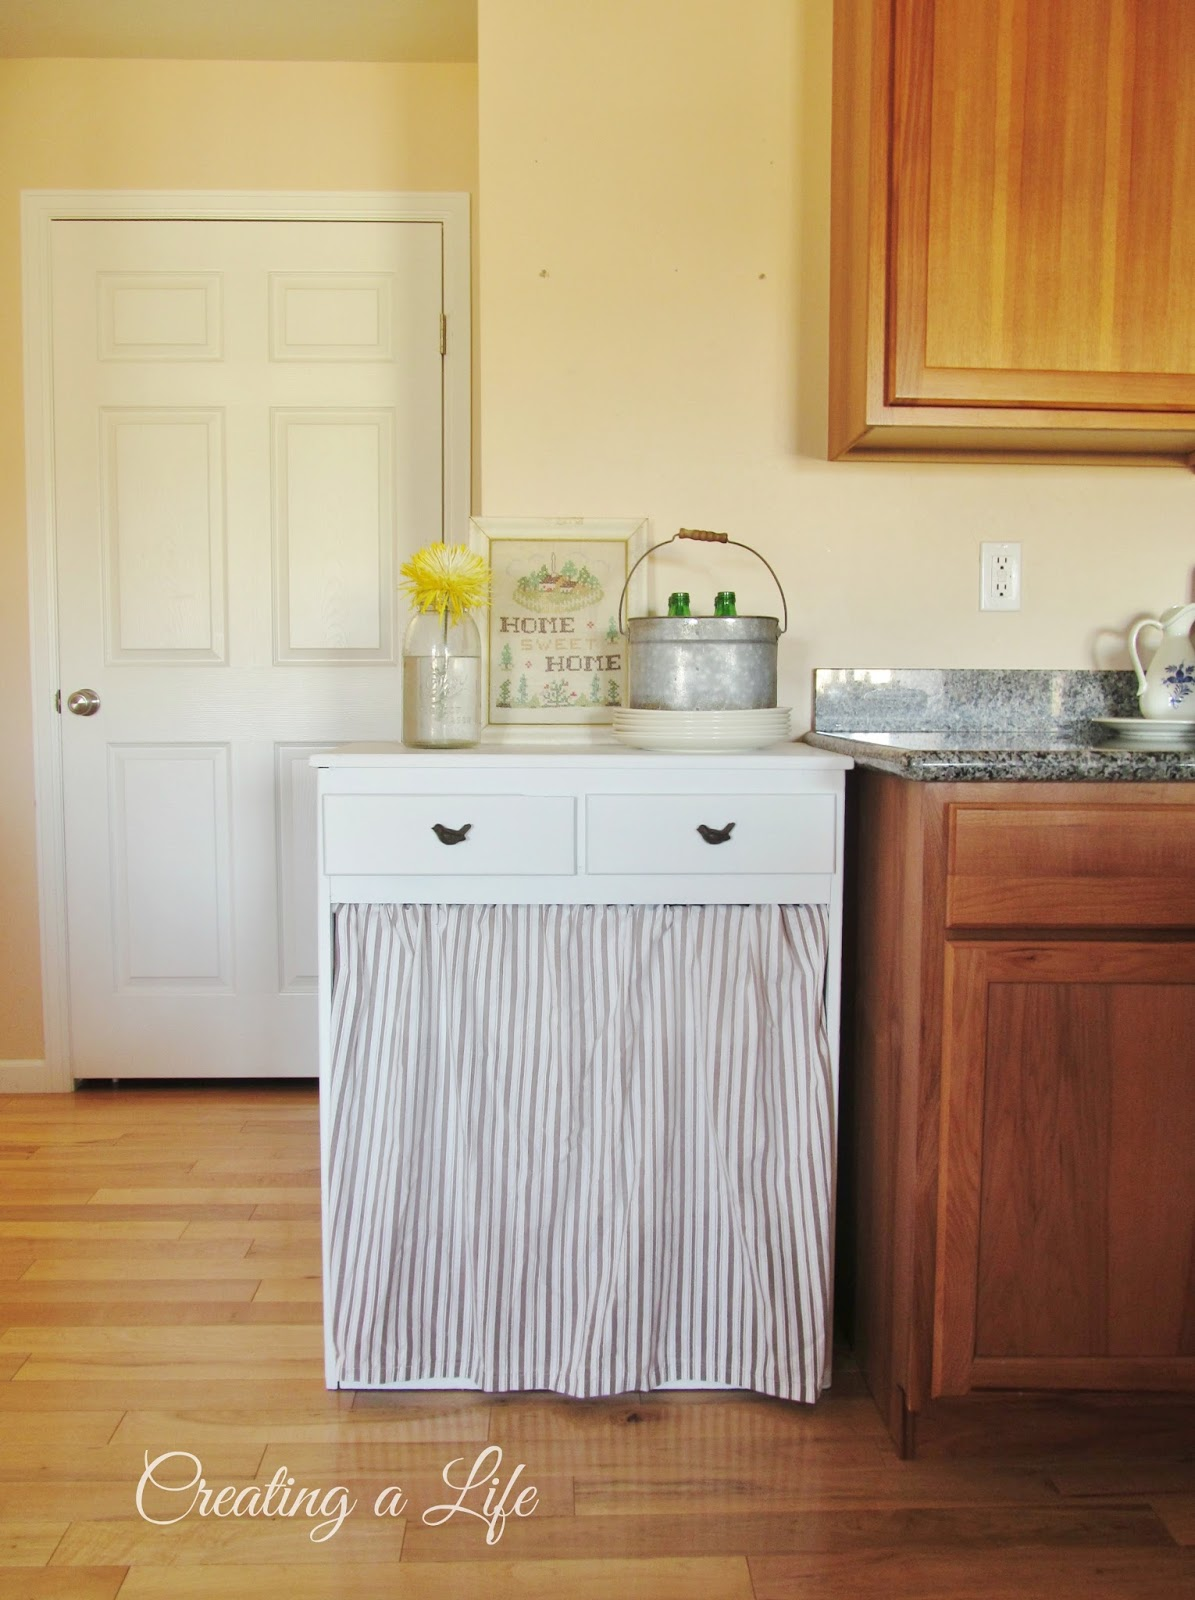 Creating A Life: Farmhouse Style Kitchen Cabinet